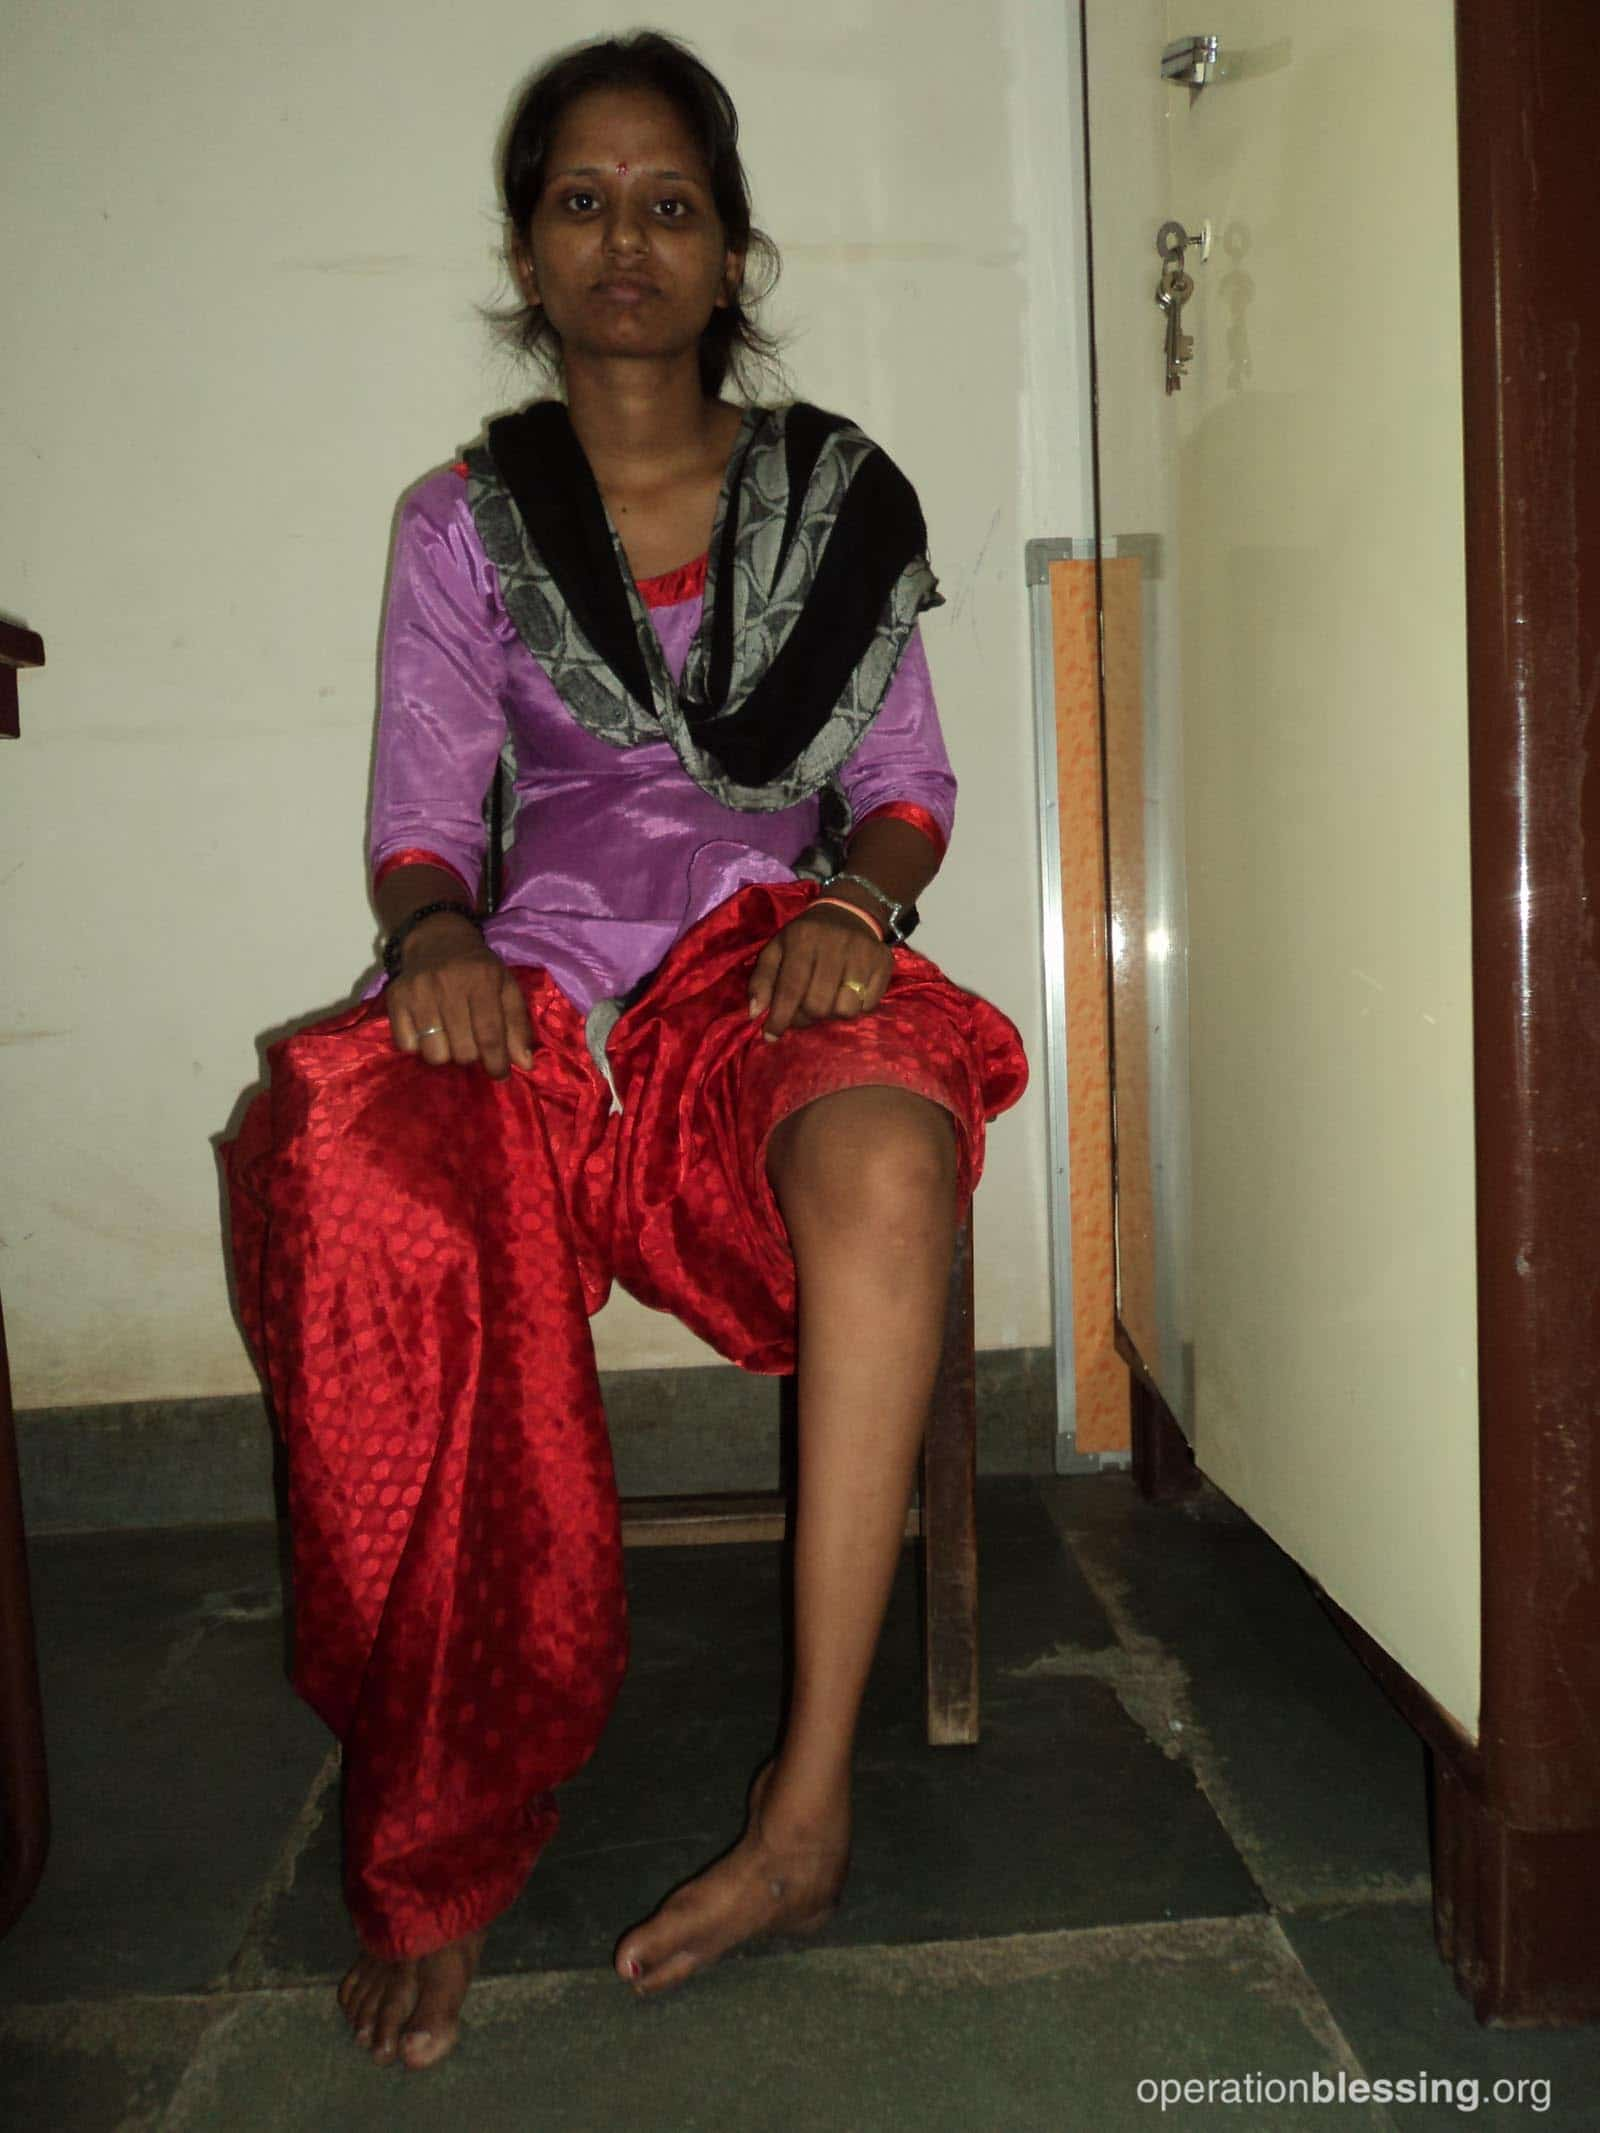 Sangeeta from India sits showing her uncorrected clubfoot in need of treatment.